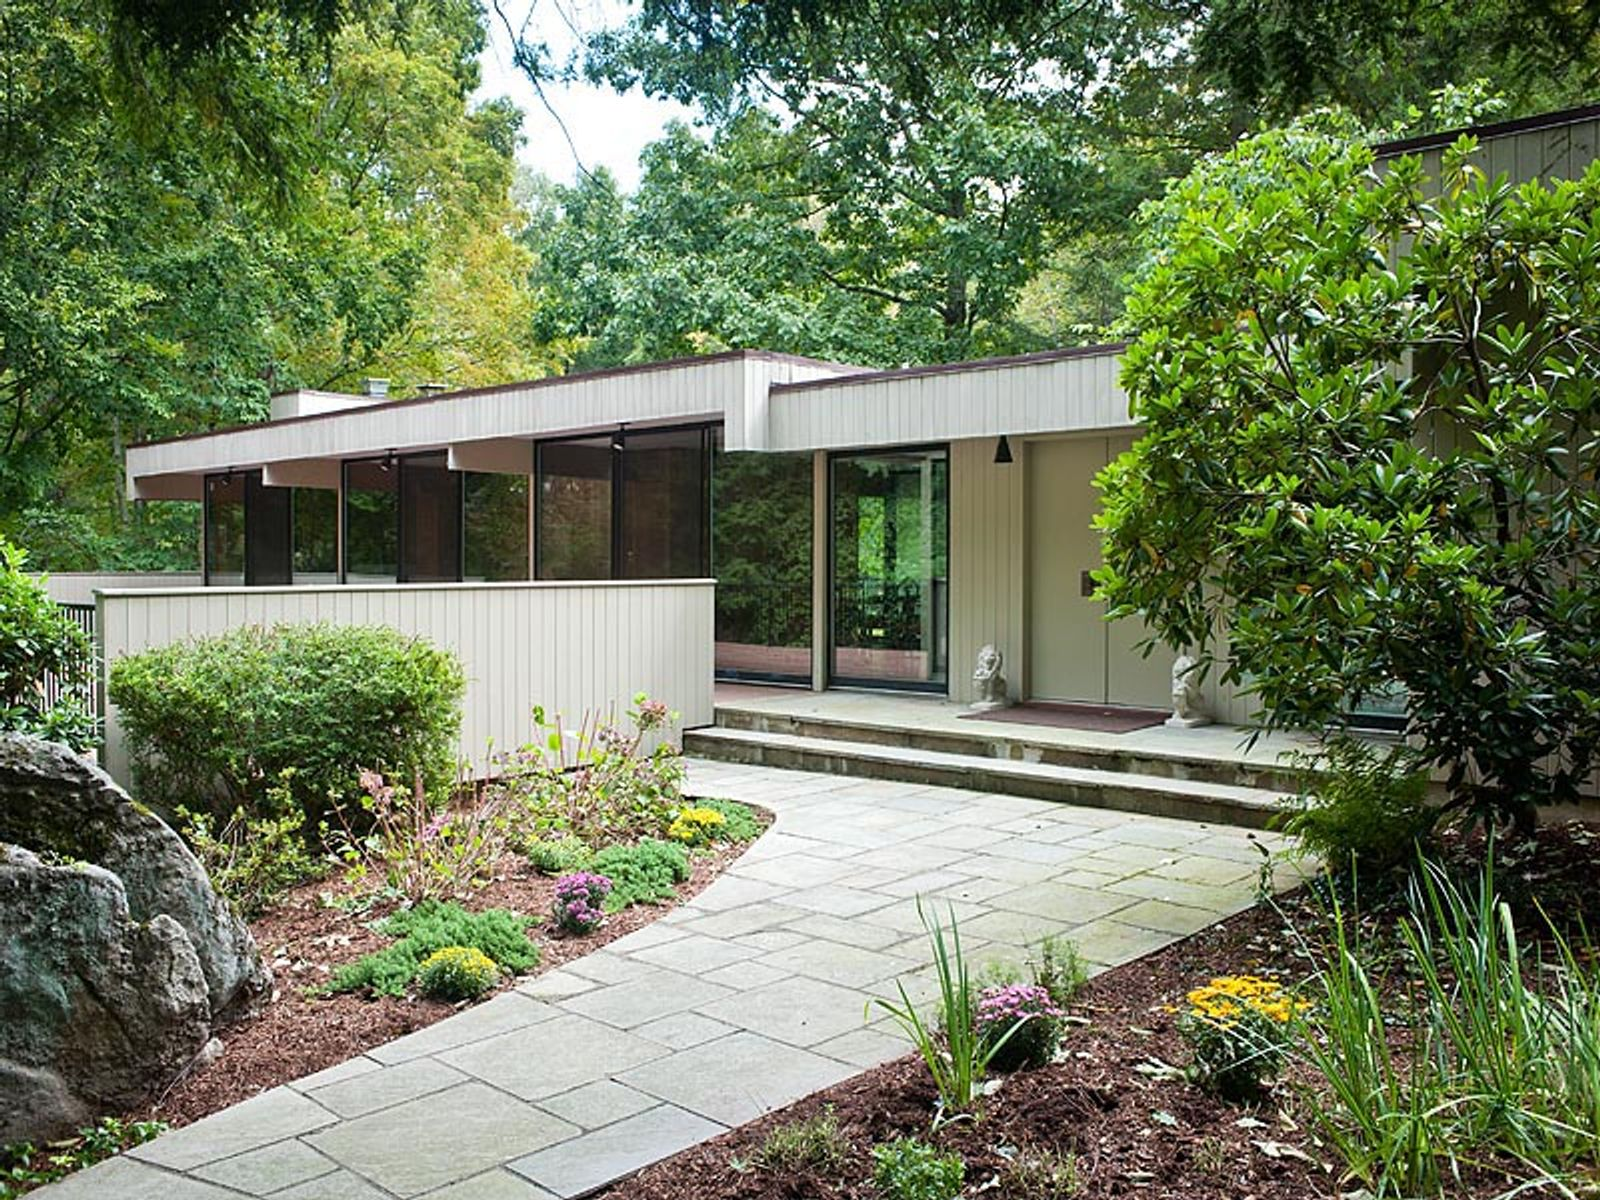 Picturesque Contemporary, Greenwich CT Single Family Home - Greenwich Real Estate